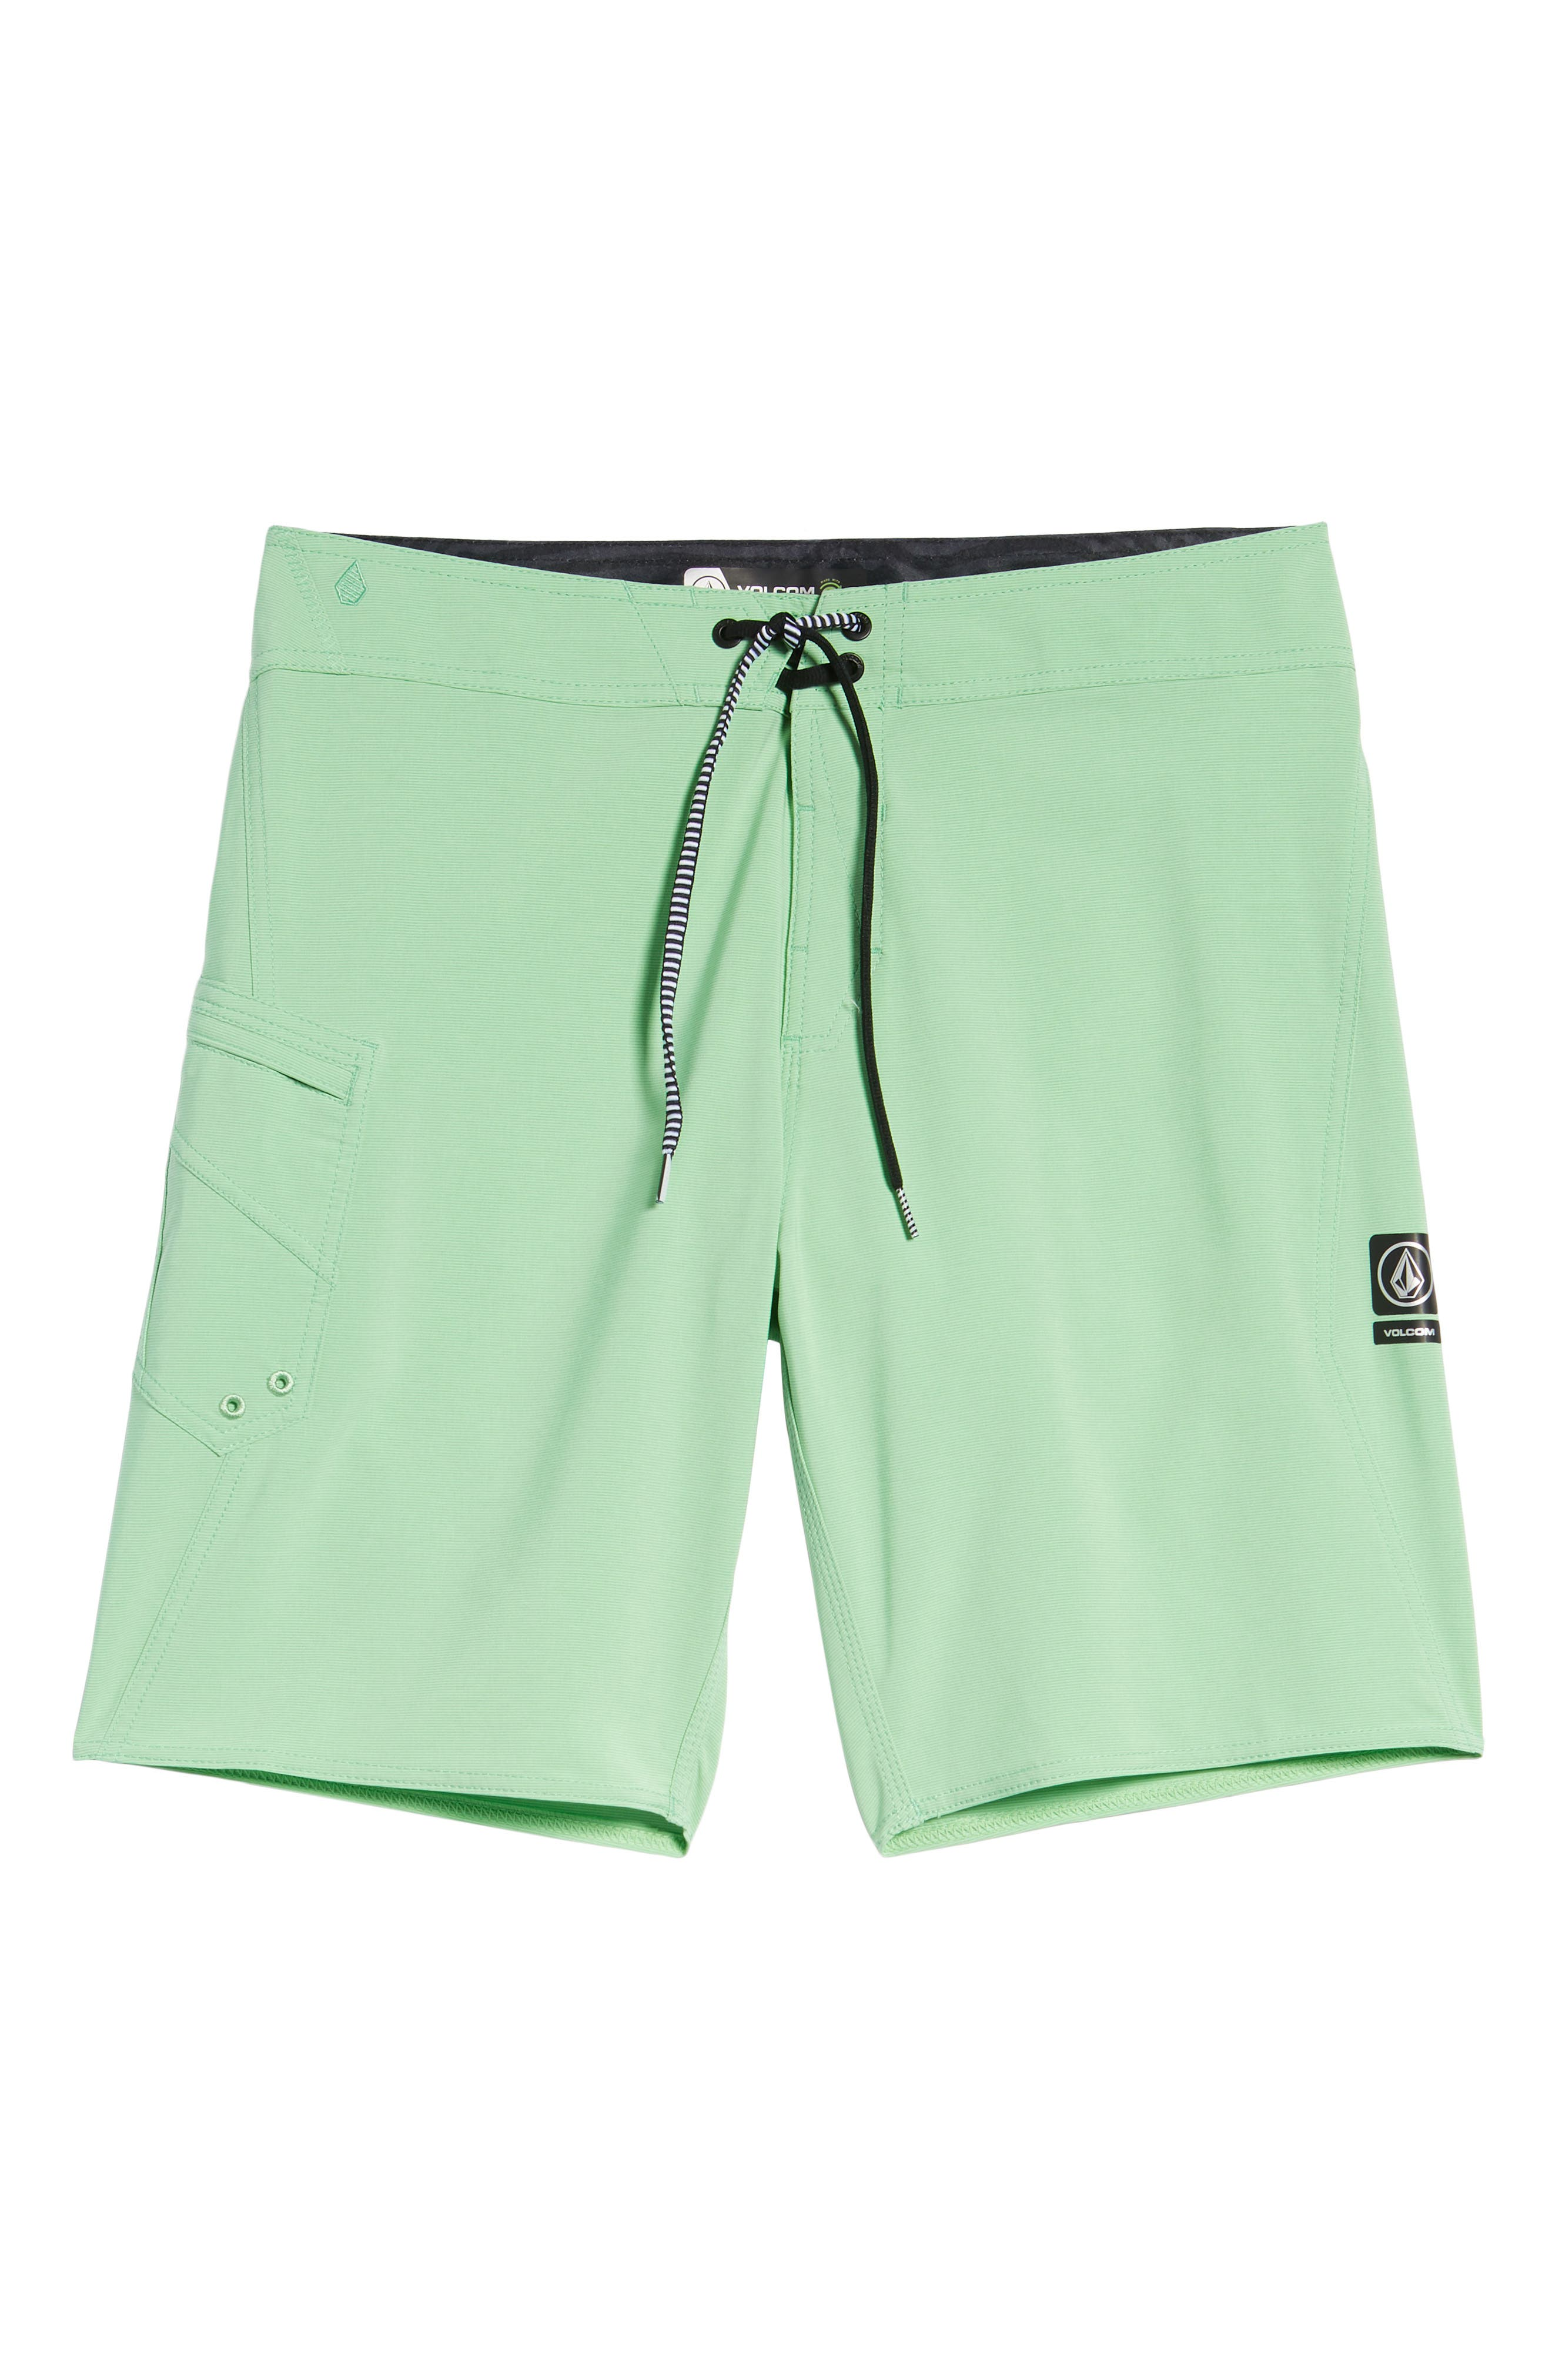 Lido Mod Board Shorts,                             Alternate thumbnail 6, color,                             Poison Green